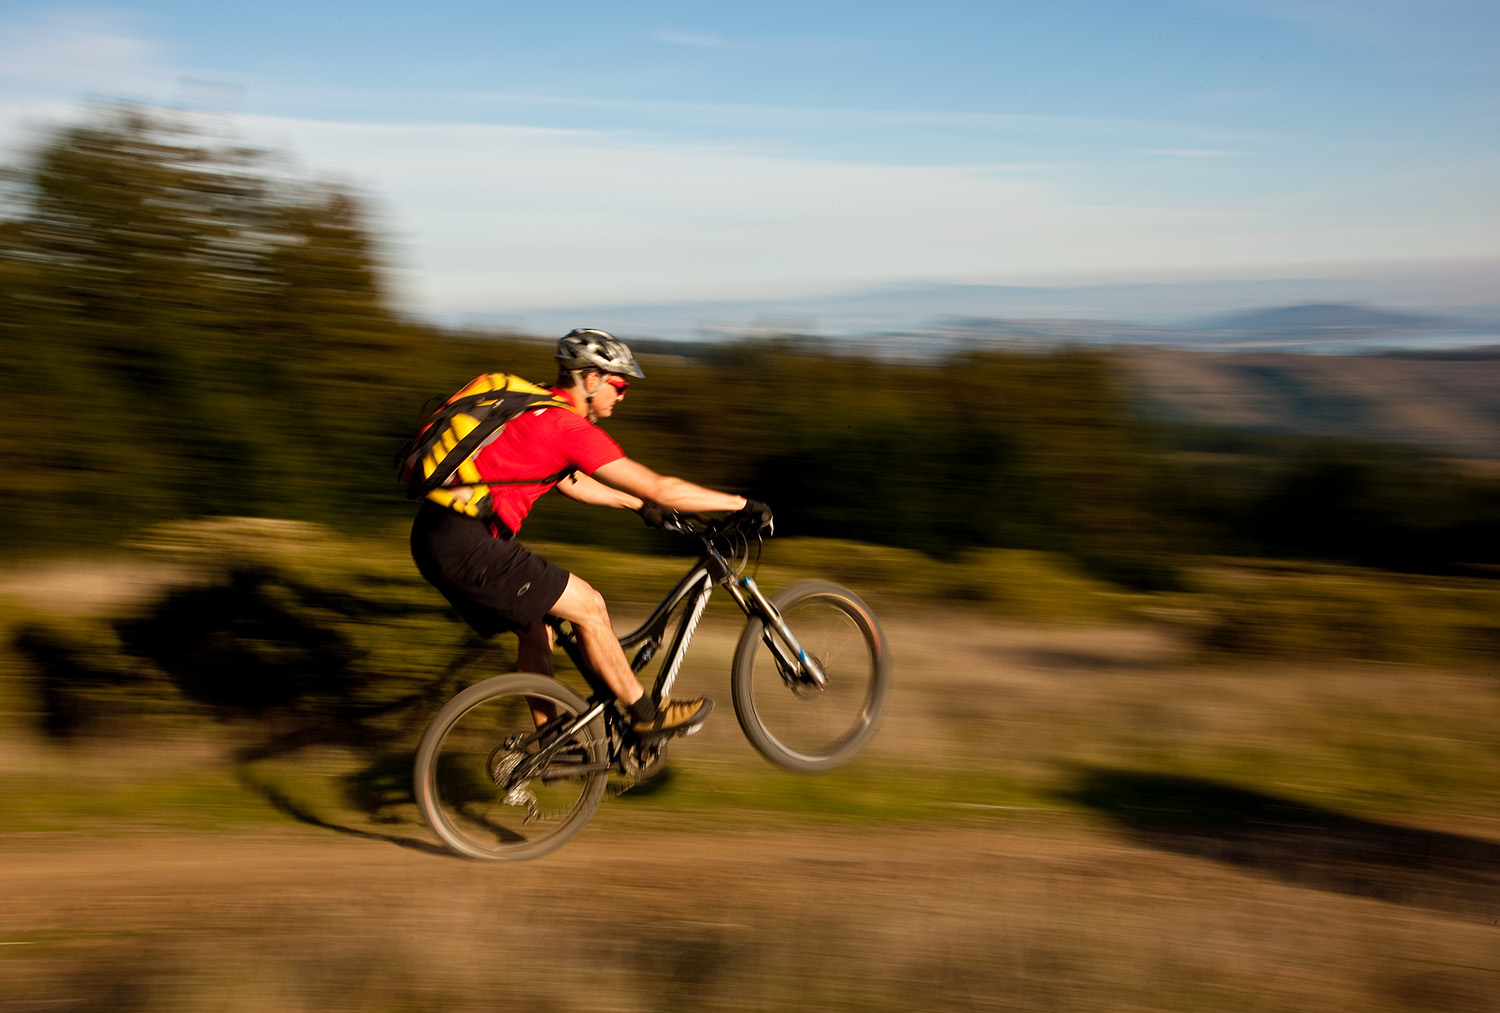 Walt Denson Captures Jiro at Speed on Mt Tam's Coastal Trail with a 1/30th shutter speed